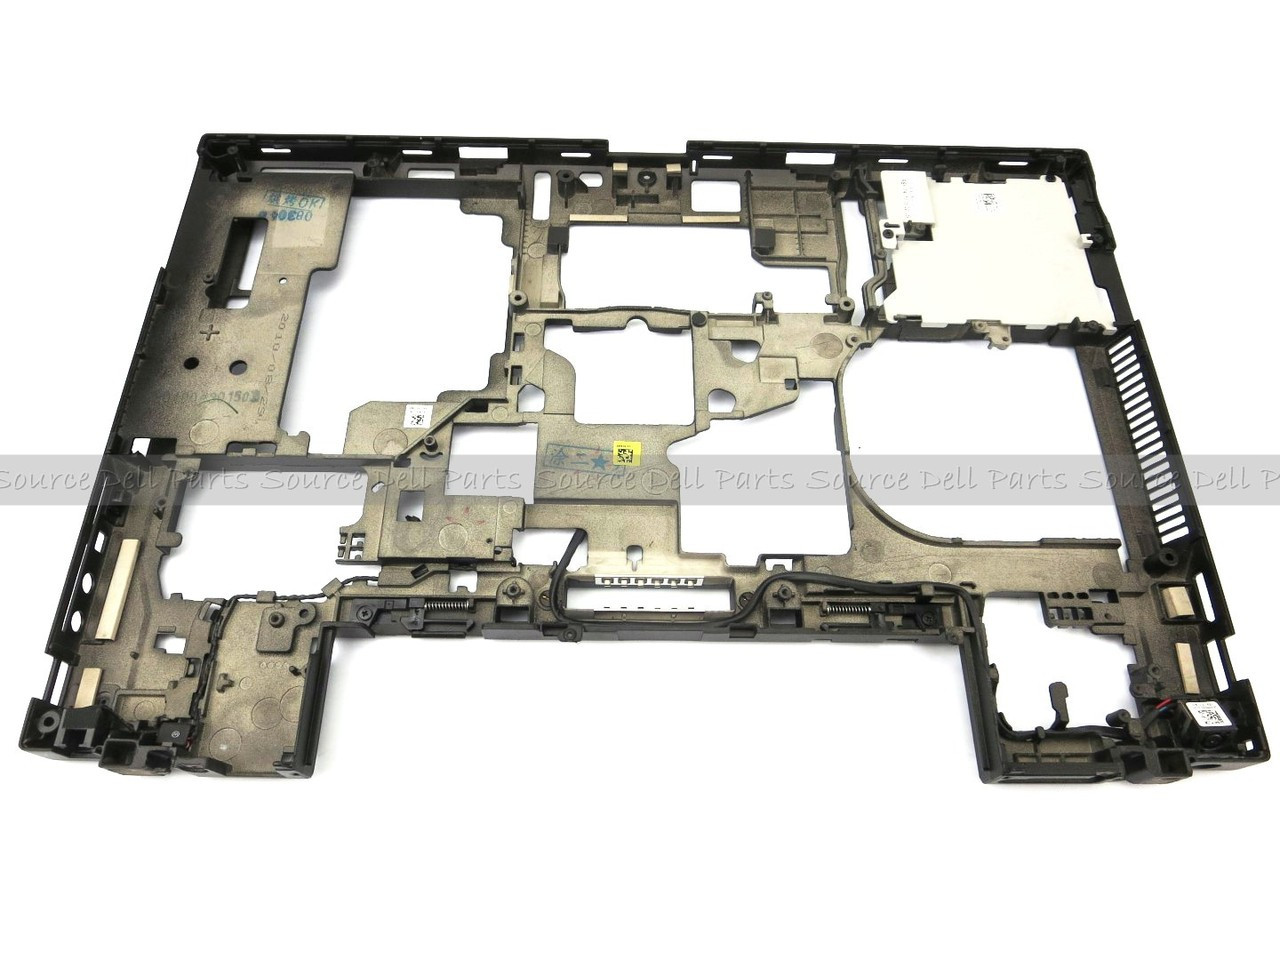 Dell Latitude E6510 Laptop Bottom Base Cover Assembly - XNRJC